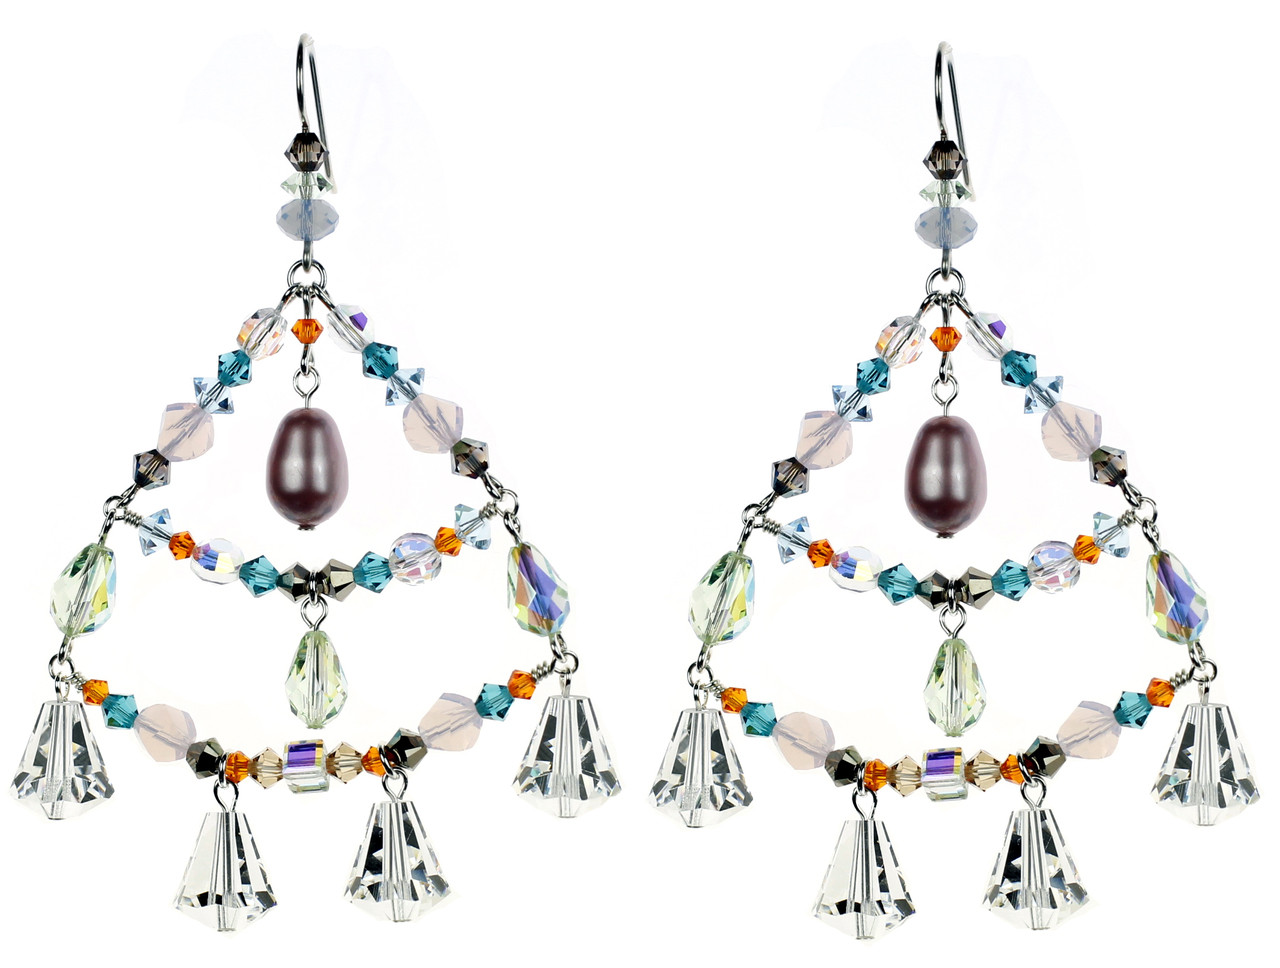 Crystal chandelier earrings designer jewelry karen curtis nyc colorful chandelier earrings with crystals from swarovski mozeypictures Choice Image